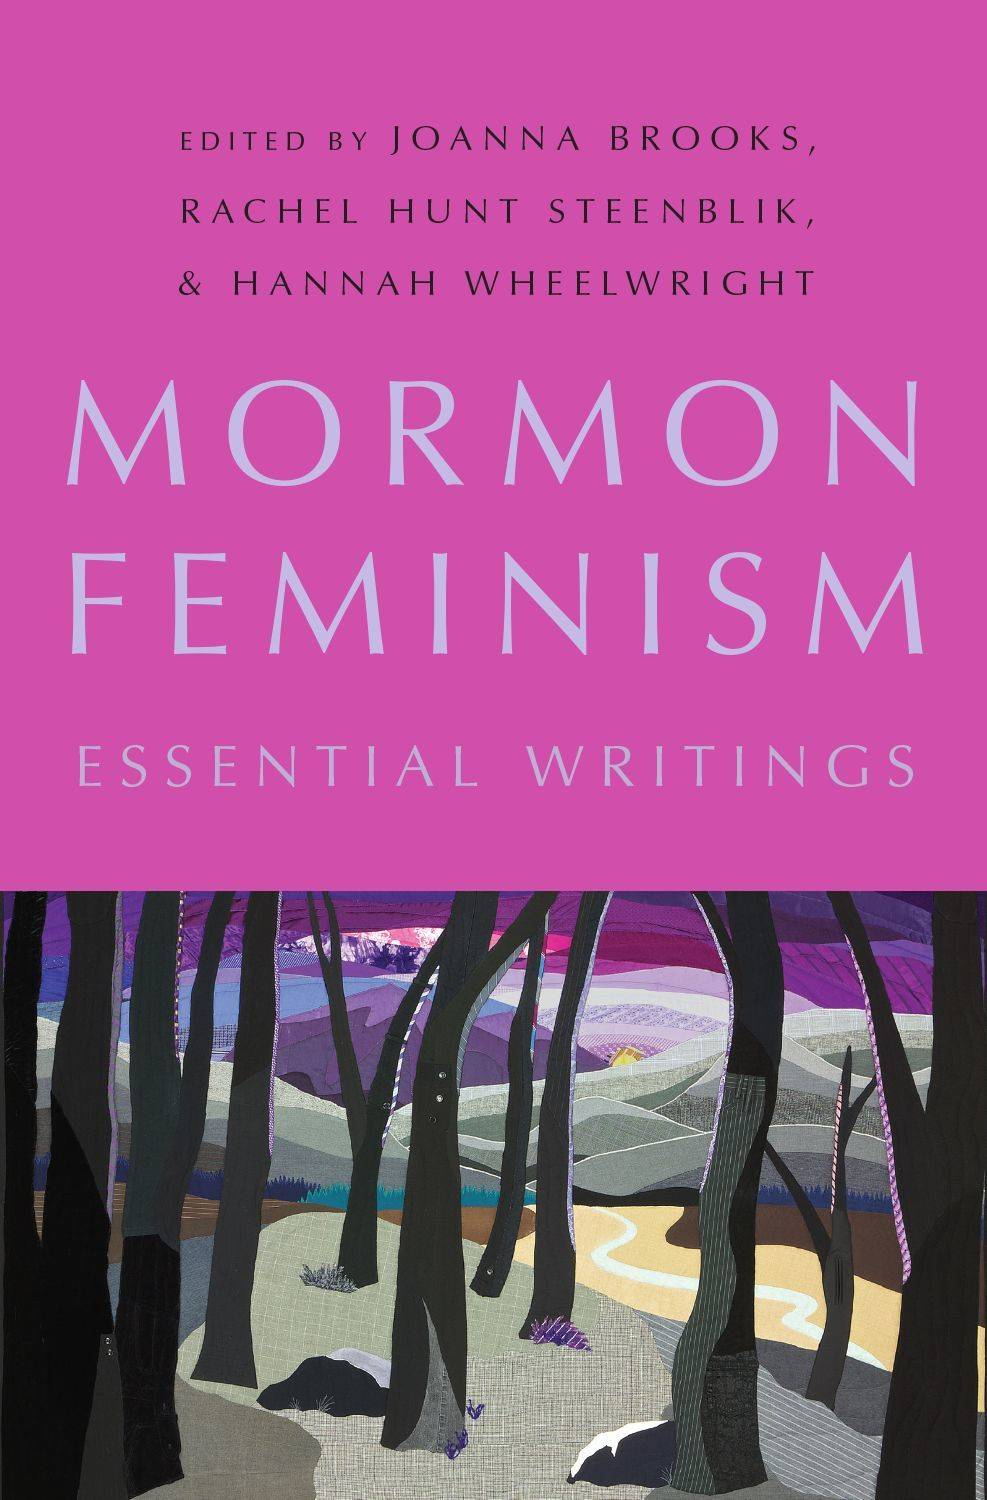 What is your opinion of feminism and why?